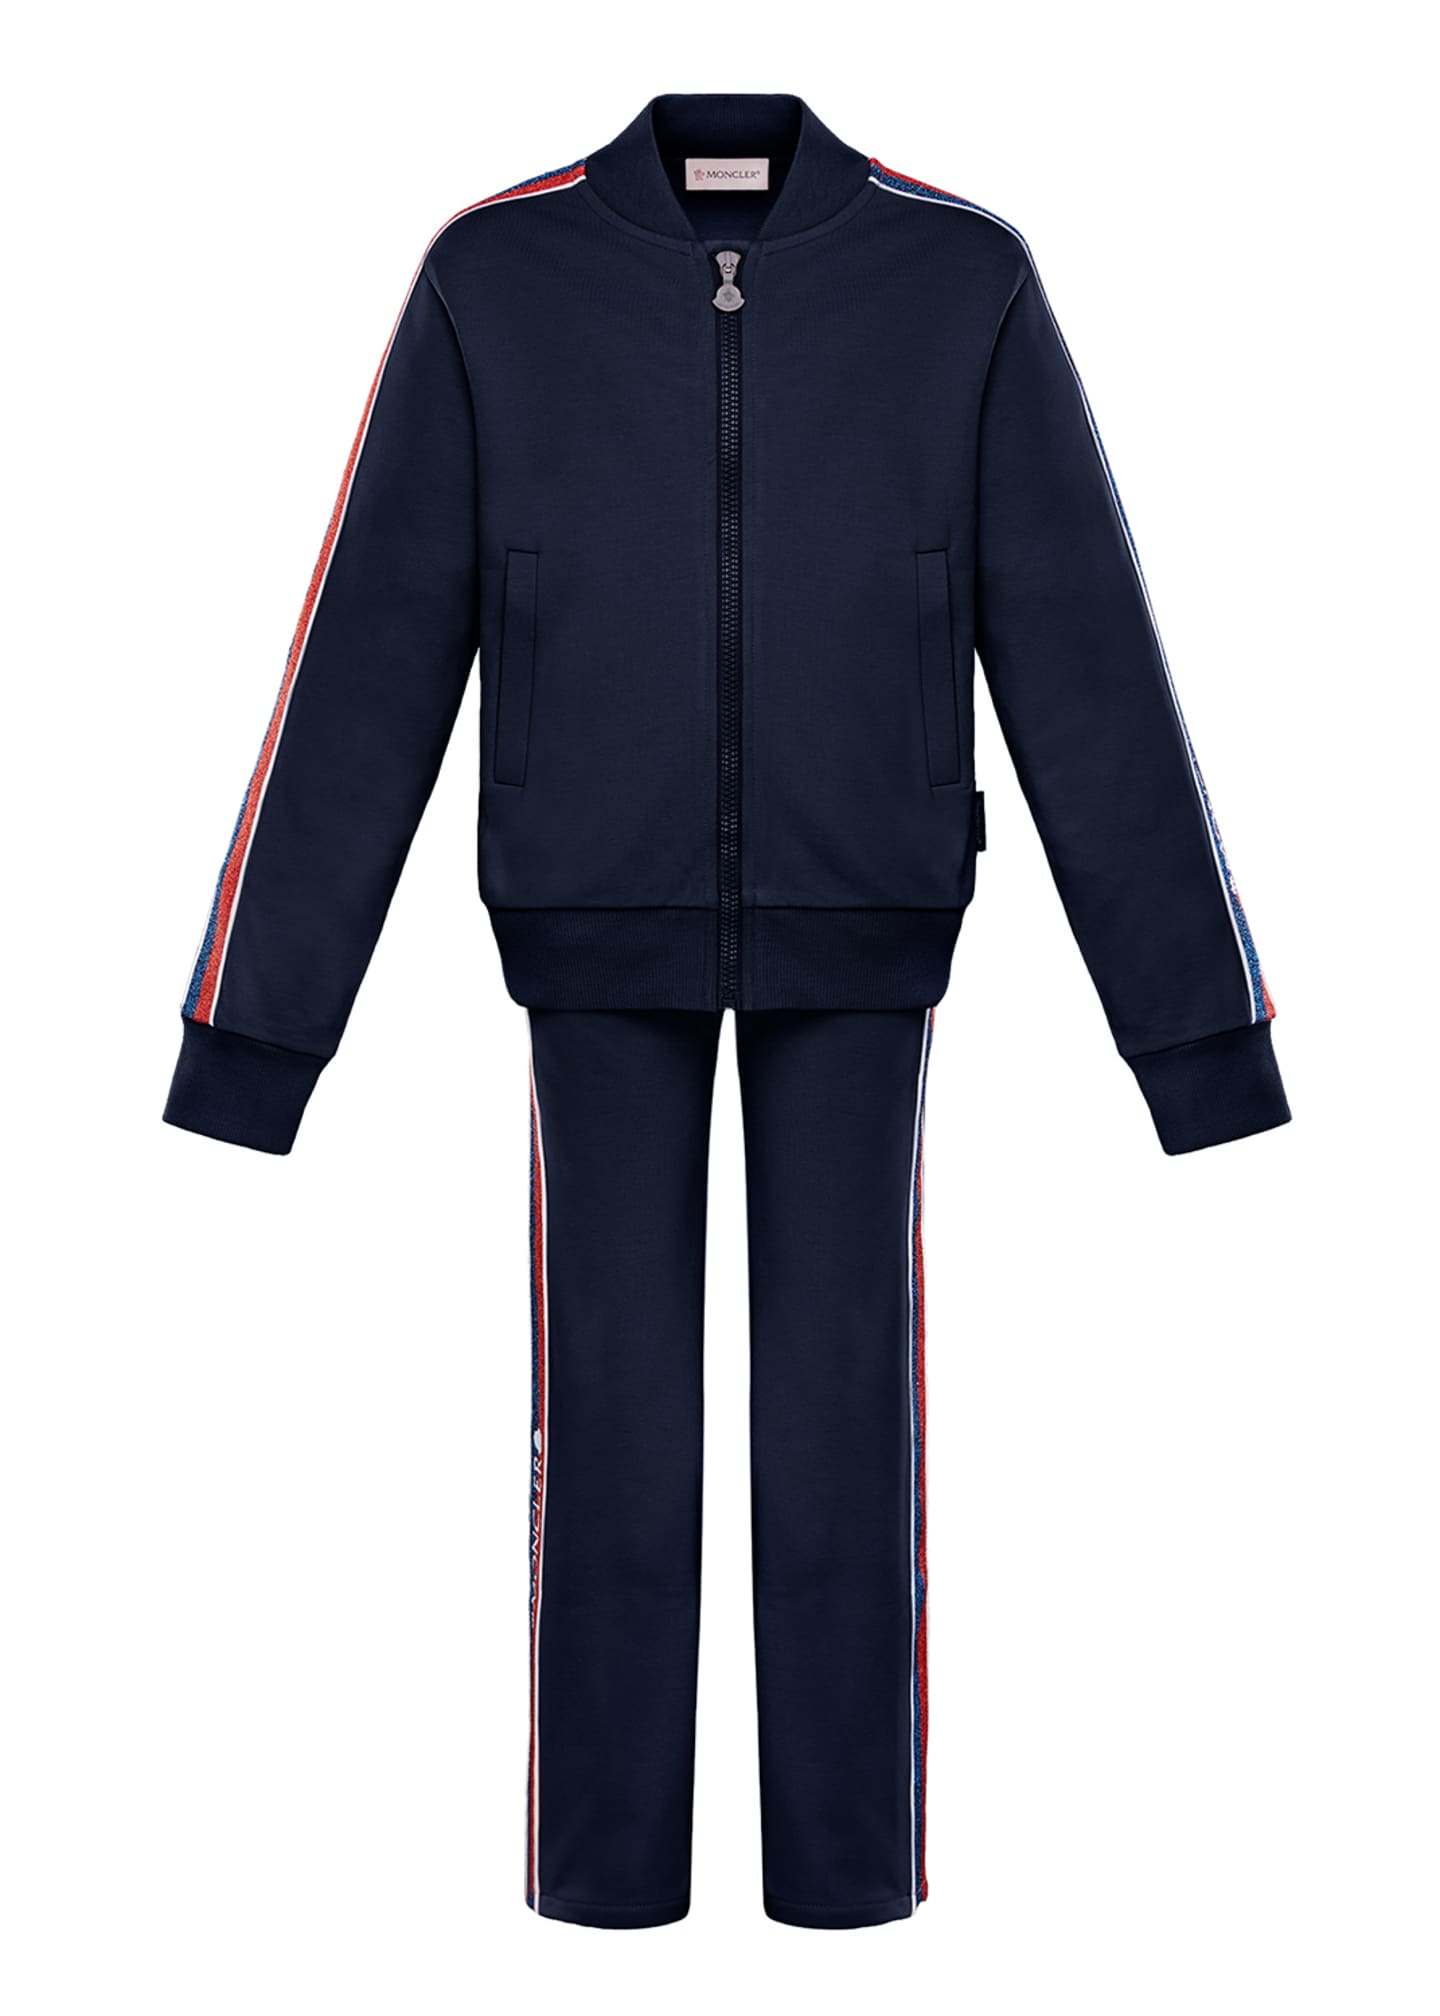 Moncler Glitter Striped-Trim Jacket w/ Matching Pants, Size